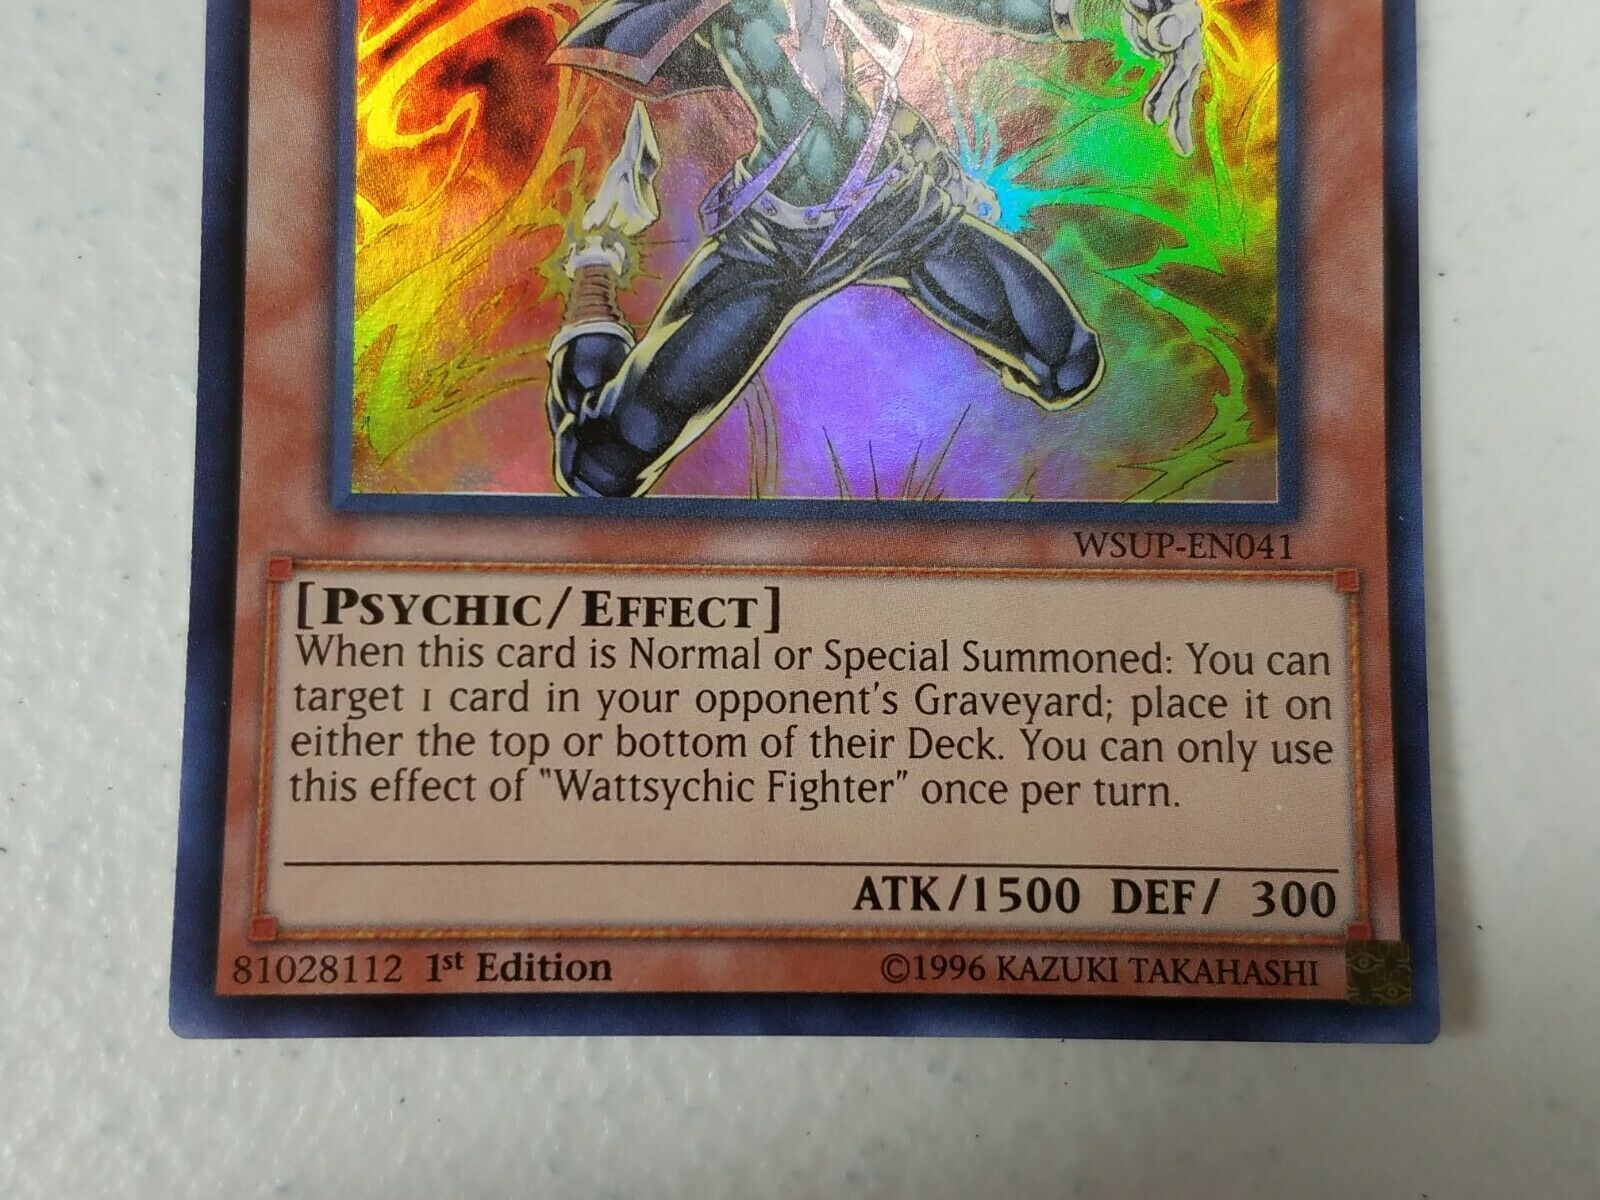 Yu-gi-oh! Trading Card - Wattsychic Fighter x2 - WSUP-EN041 - Super Rare 1st Ed.